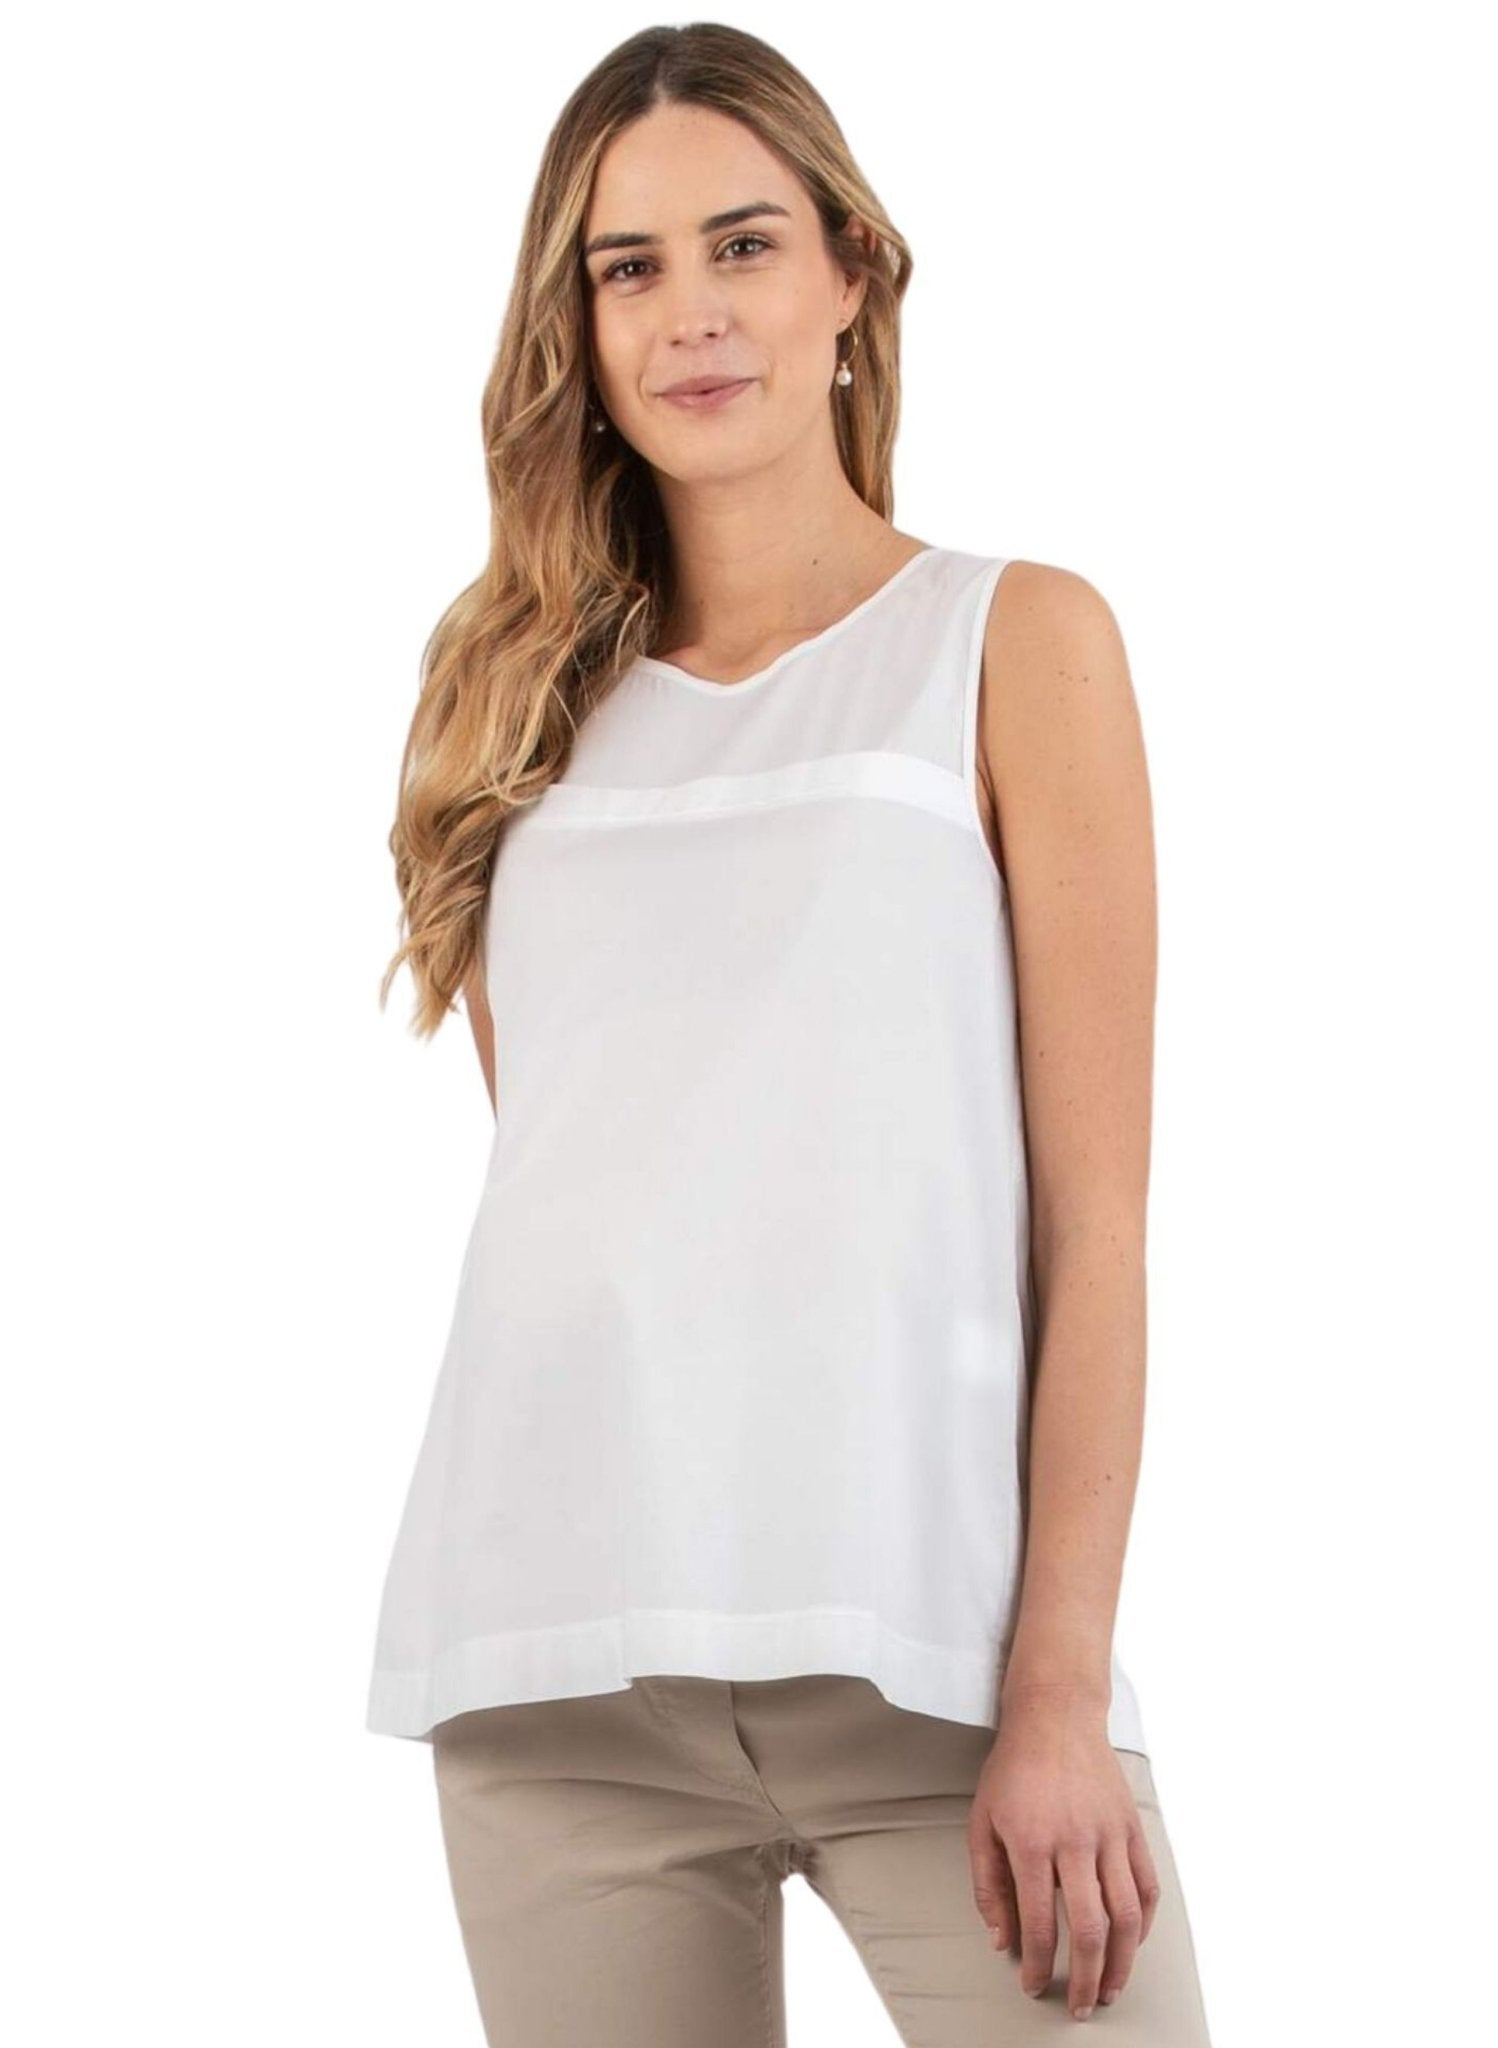 Maternity Top with Creases on the Back - Off White - Mums and Bumps